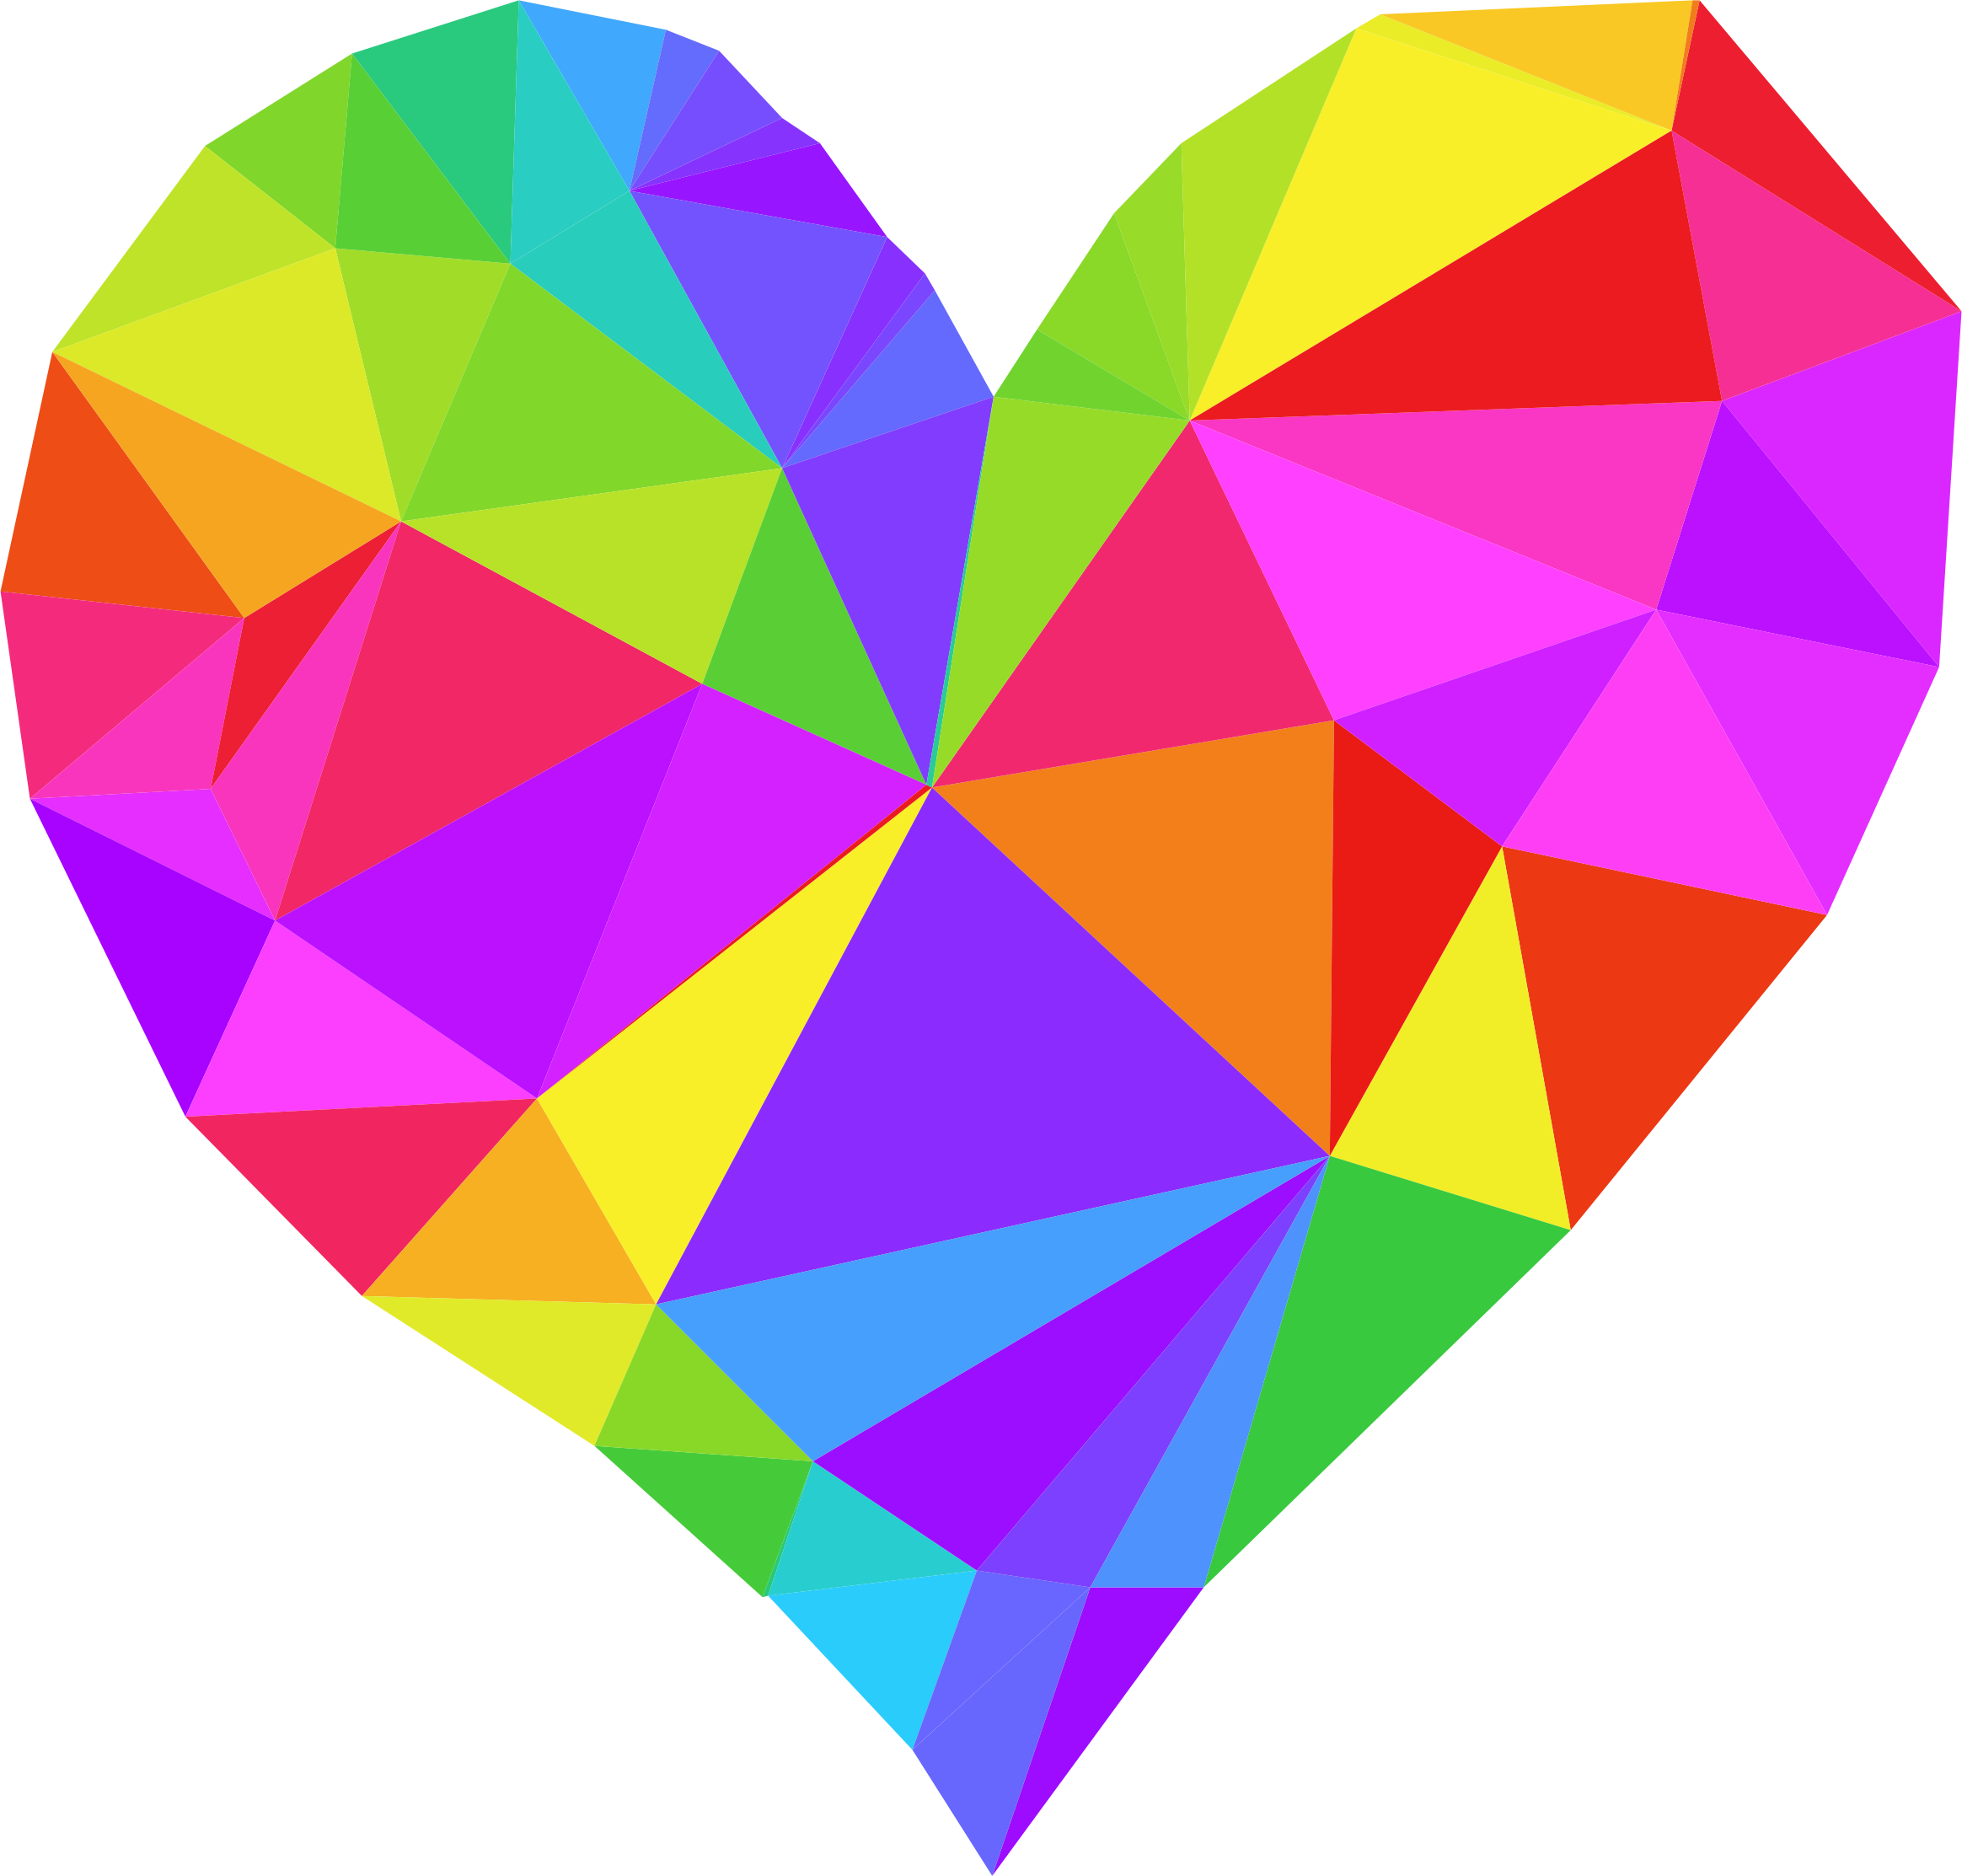 Mailbox clipart heart. Low poly by gdj